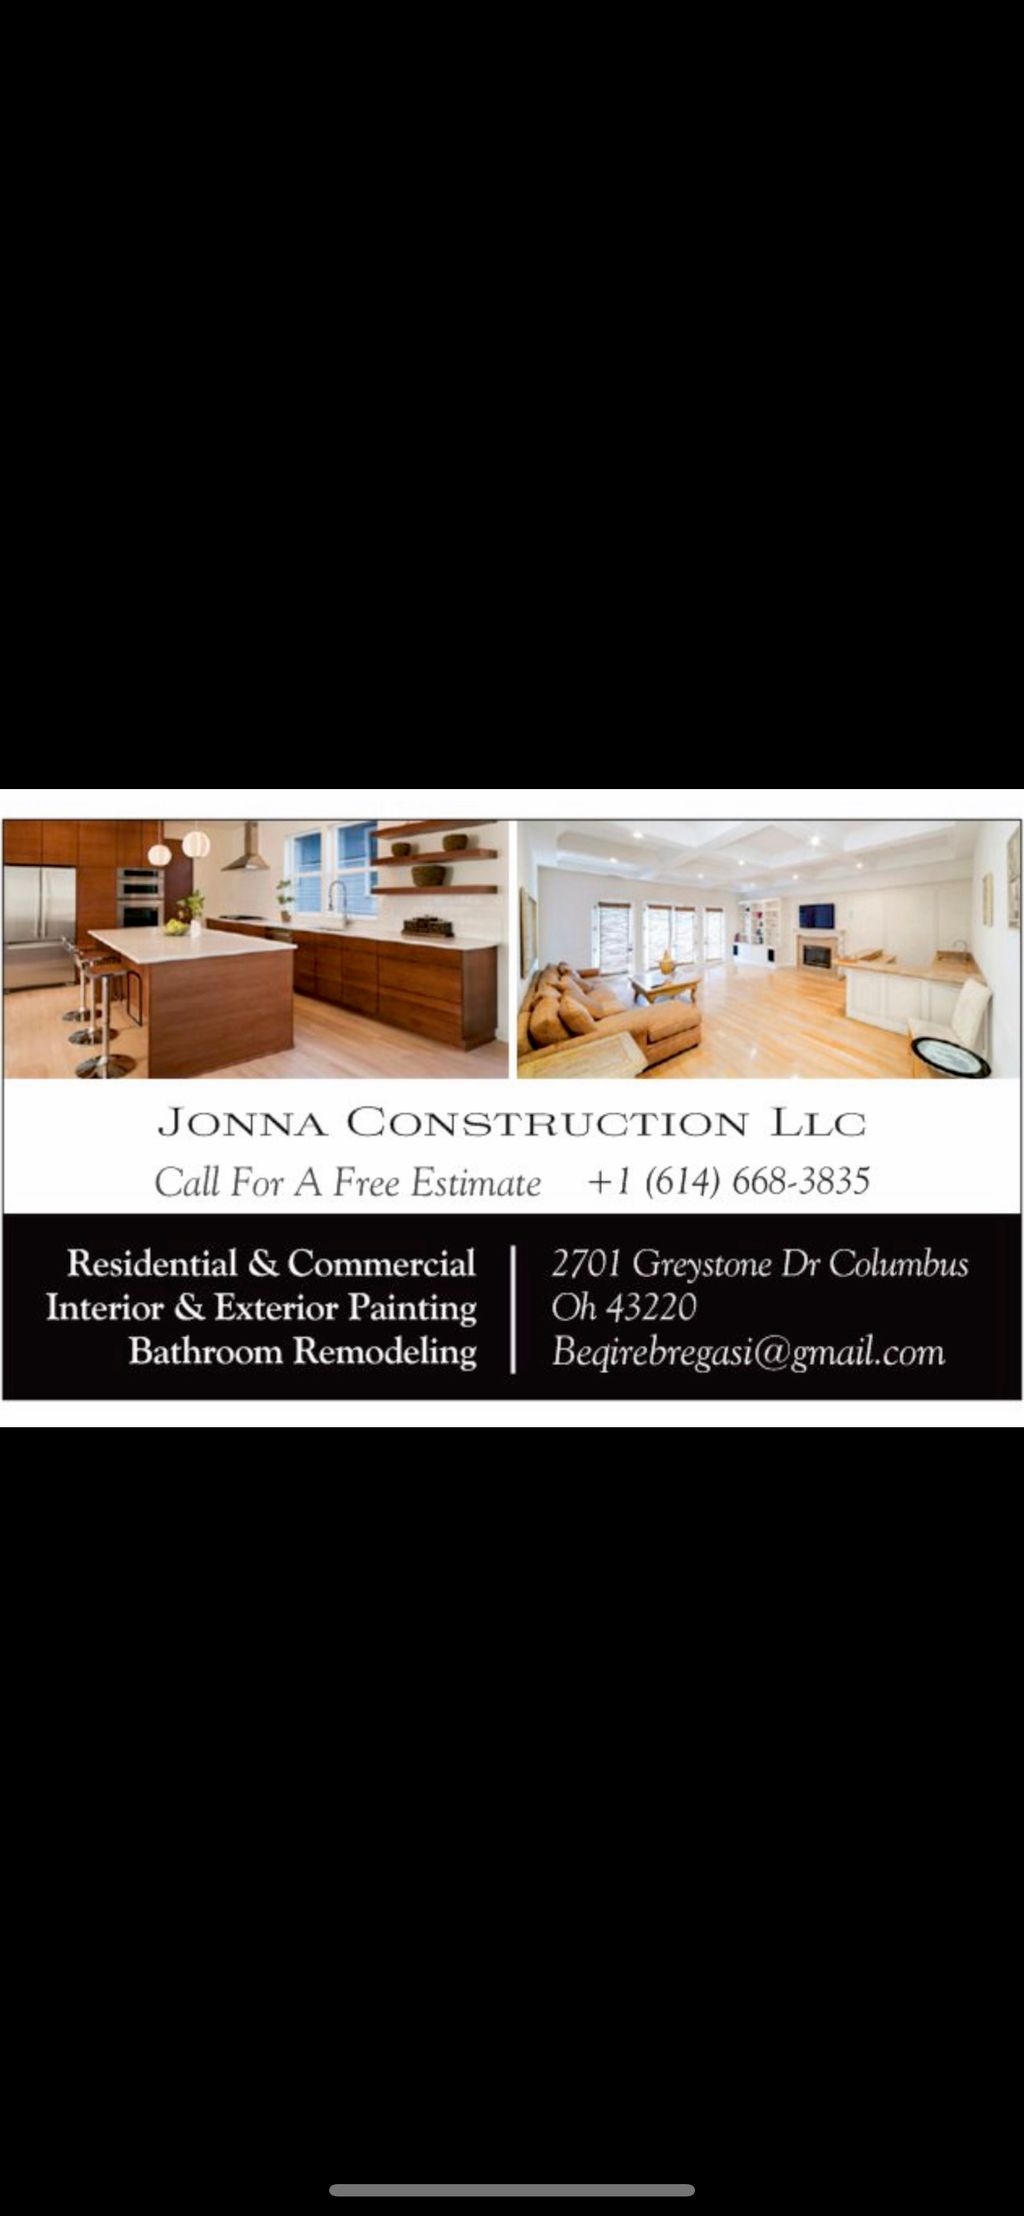 Jonna CONSTRUCTION